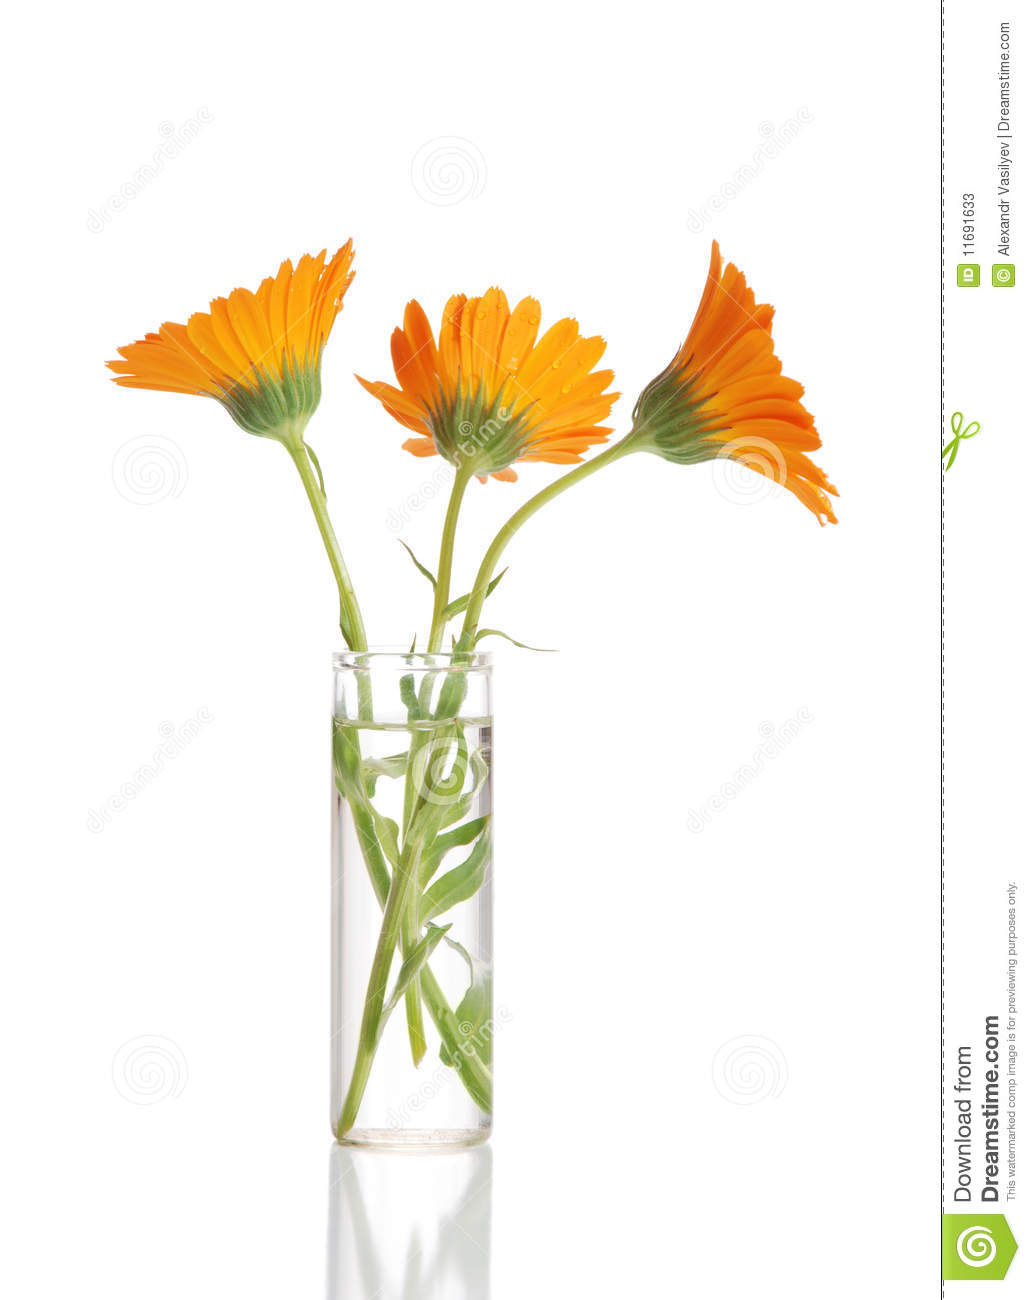 Flower in a vase stock image image of orange glass 11691633 flower in a vase orange glass reviewsmspy